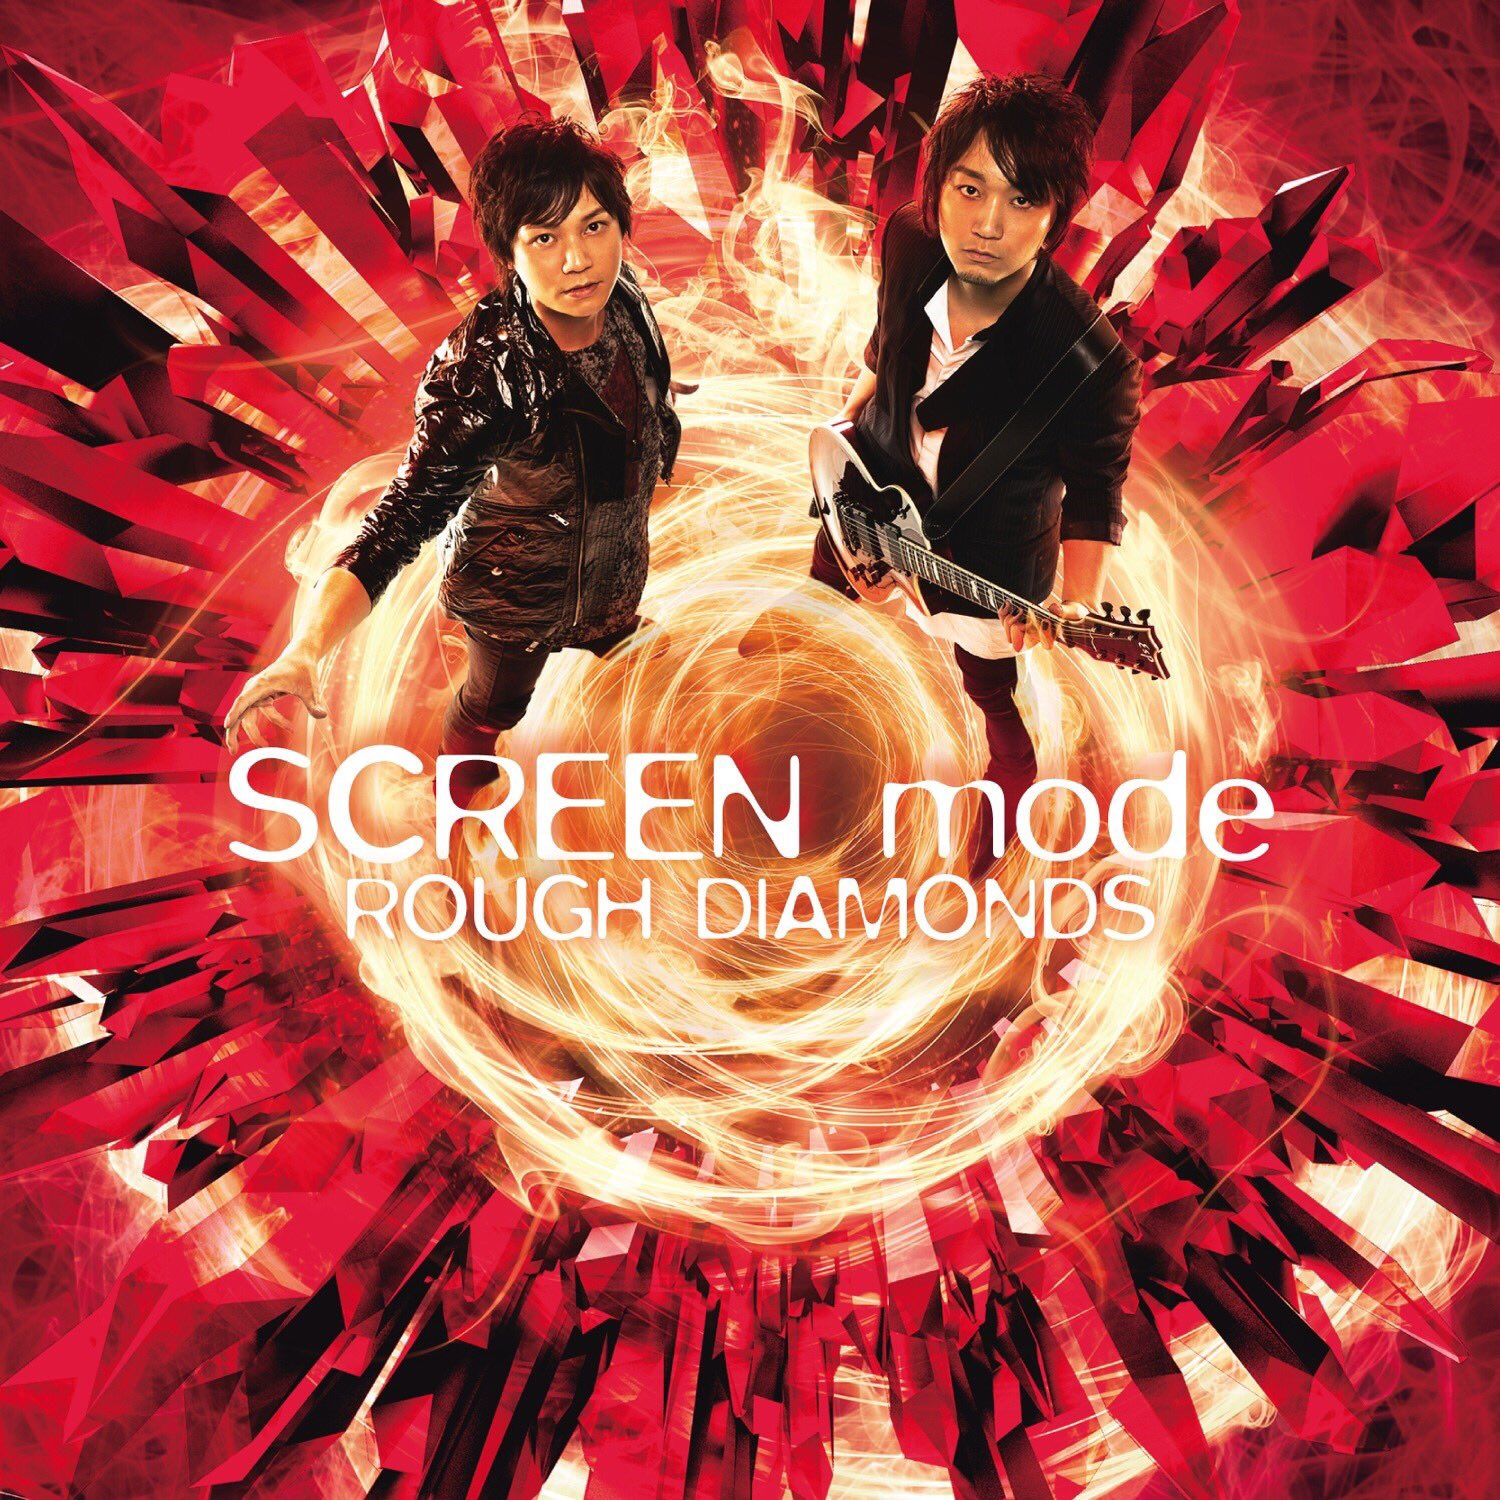 SCREEN mode - ROUGH DIAMONDS